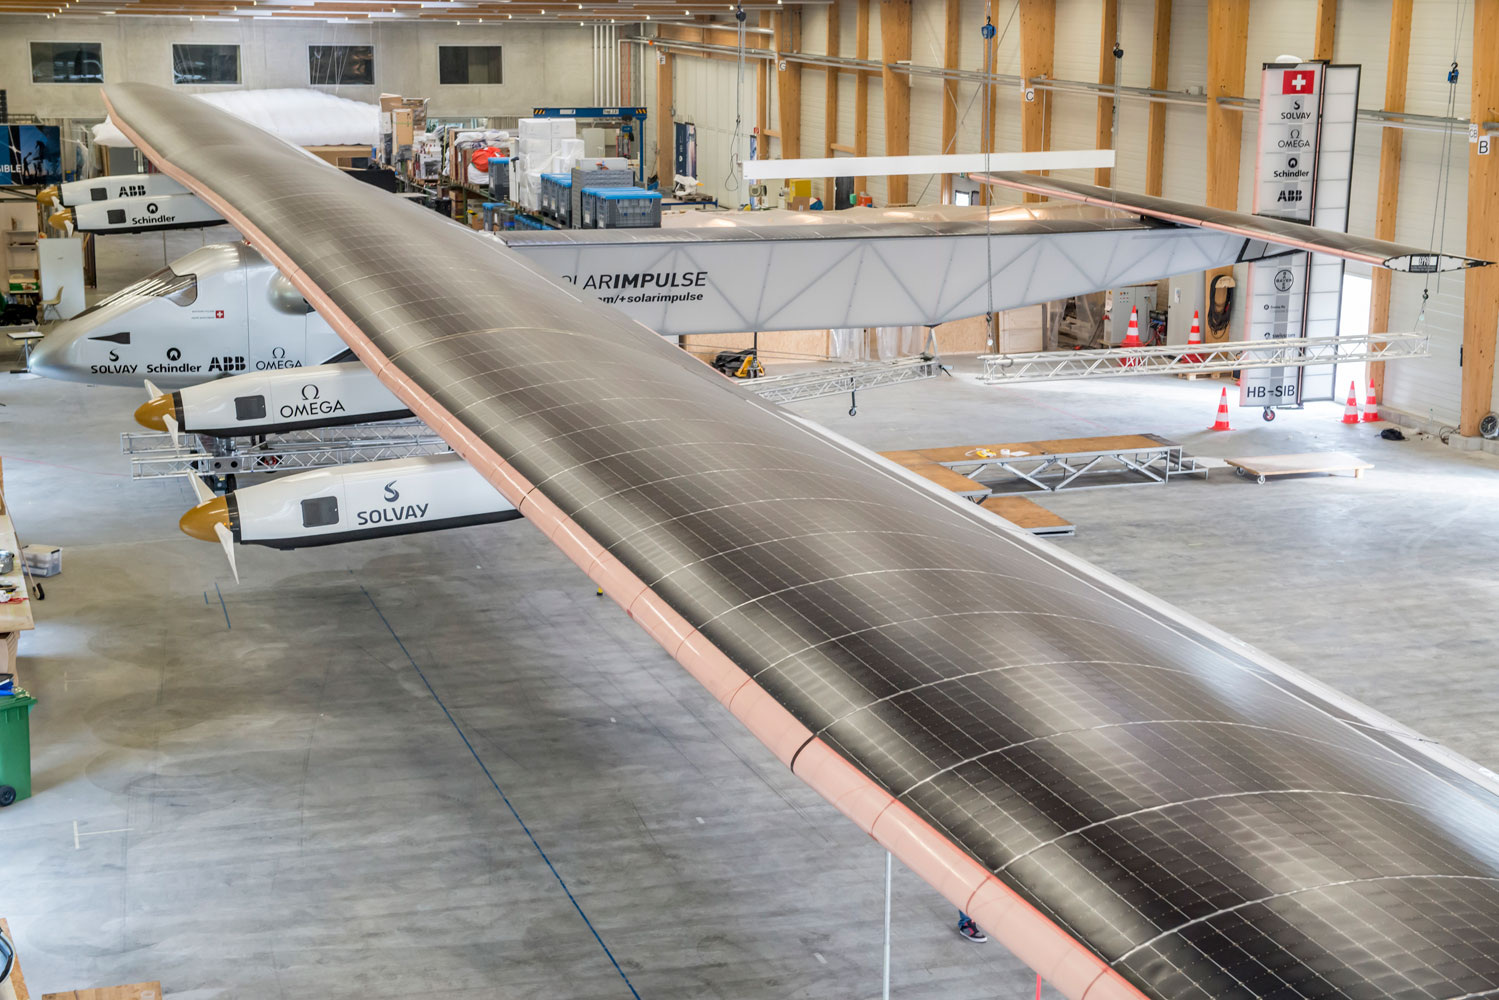 "Solar Impulse 2, the second solar powered aircraft created by Swiss pioneers Bertrand Piccard and Andre Borschberg, will make the first round-the-world solar flight in 2015. On June 2, 2014, test pilot Markus Scherberg took the aircraft, which has ""...the wingspan of a jumbo jet and the weight of a car"" on its inaugural flight."